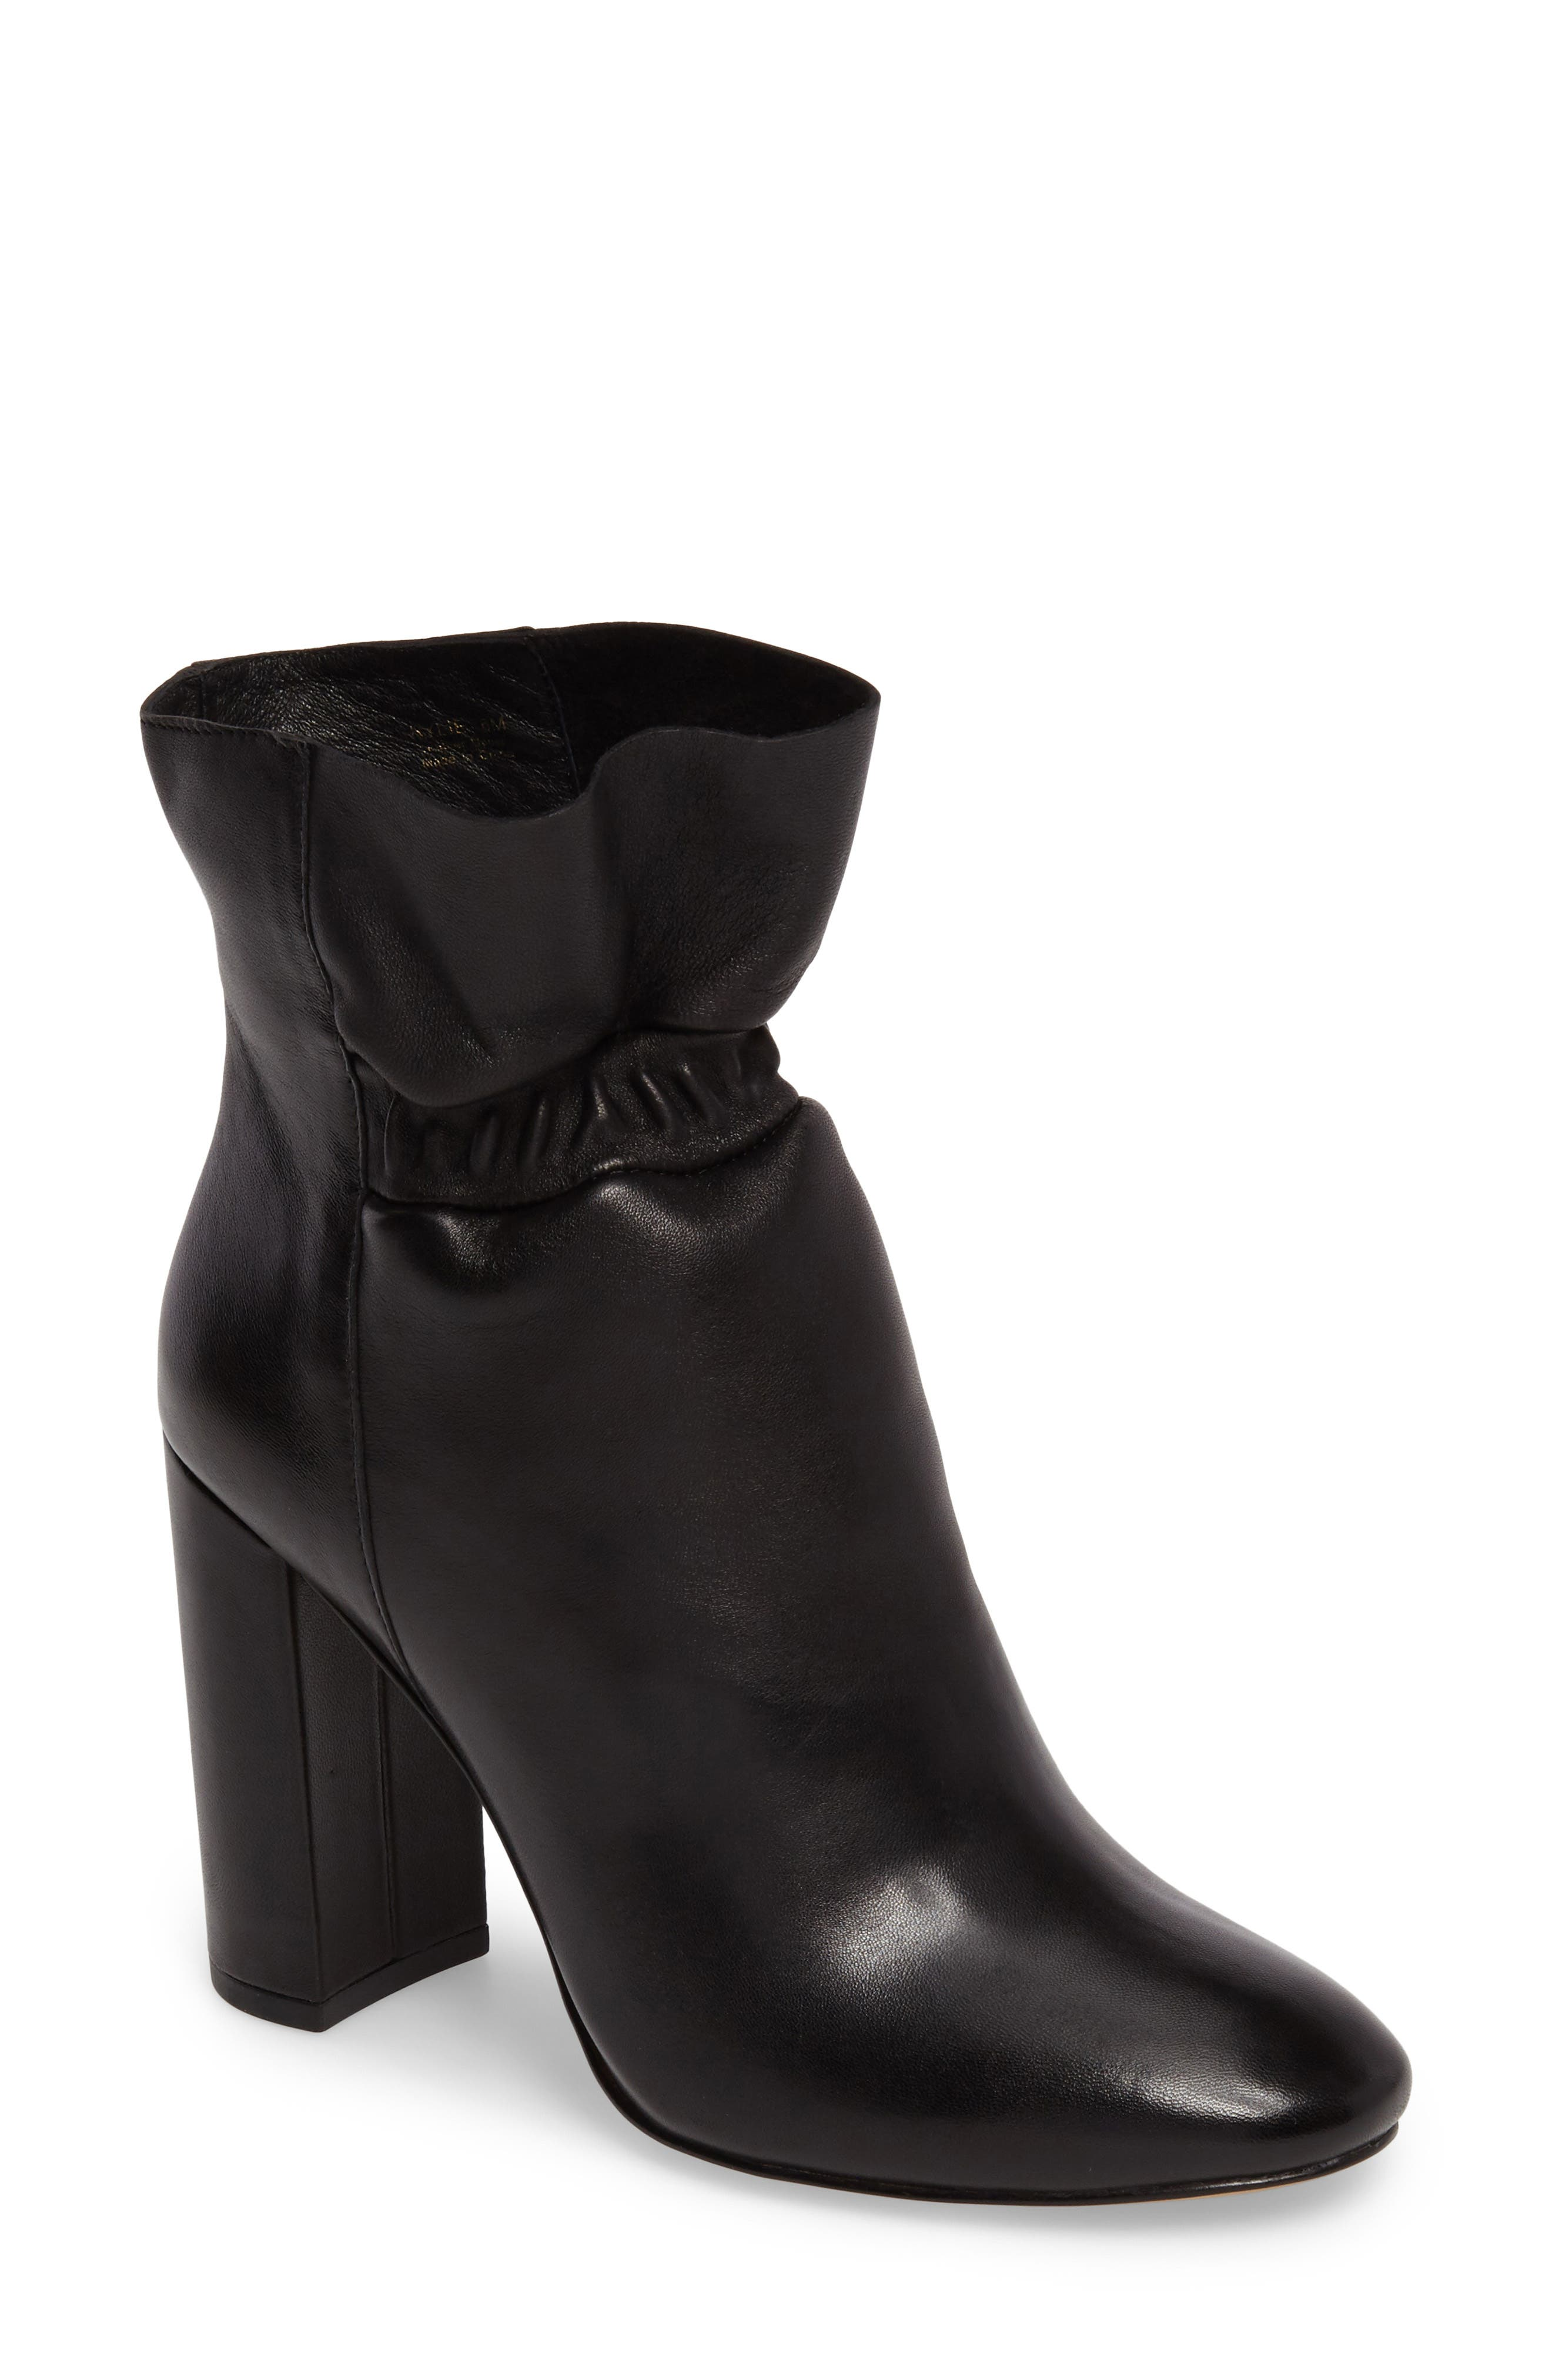 BOTKIER, Rylie Boot, Main thumbnail 1, color, 001